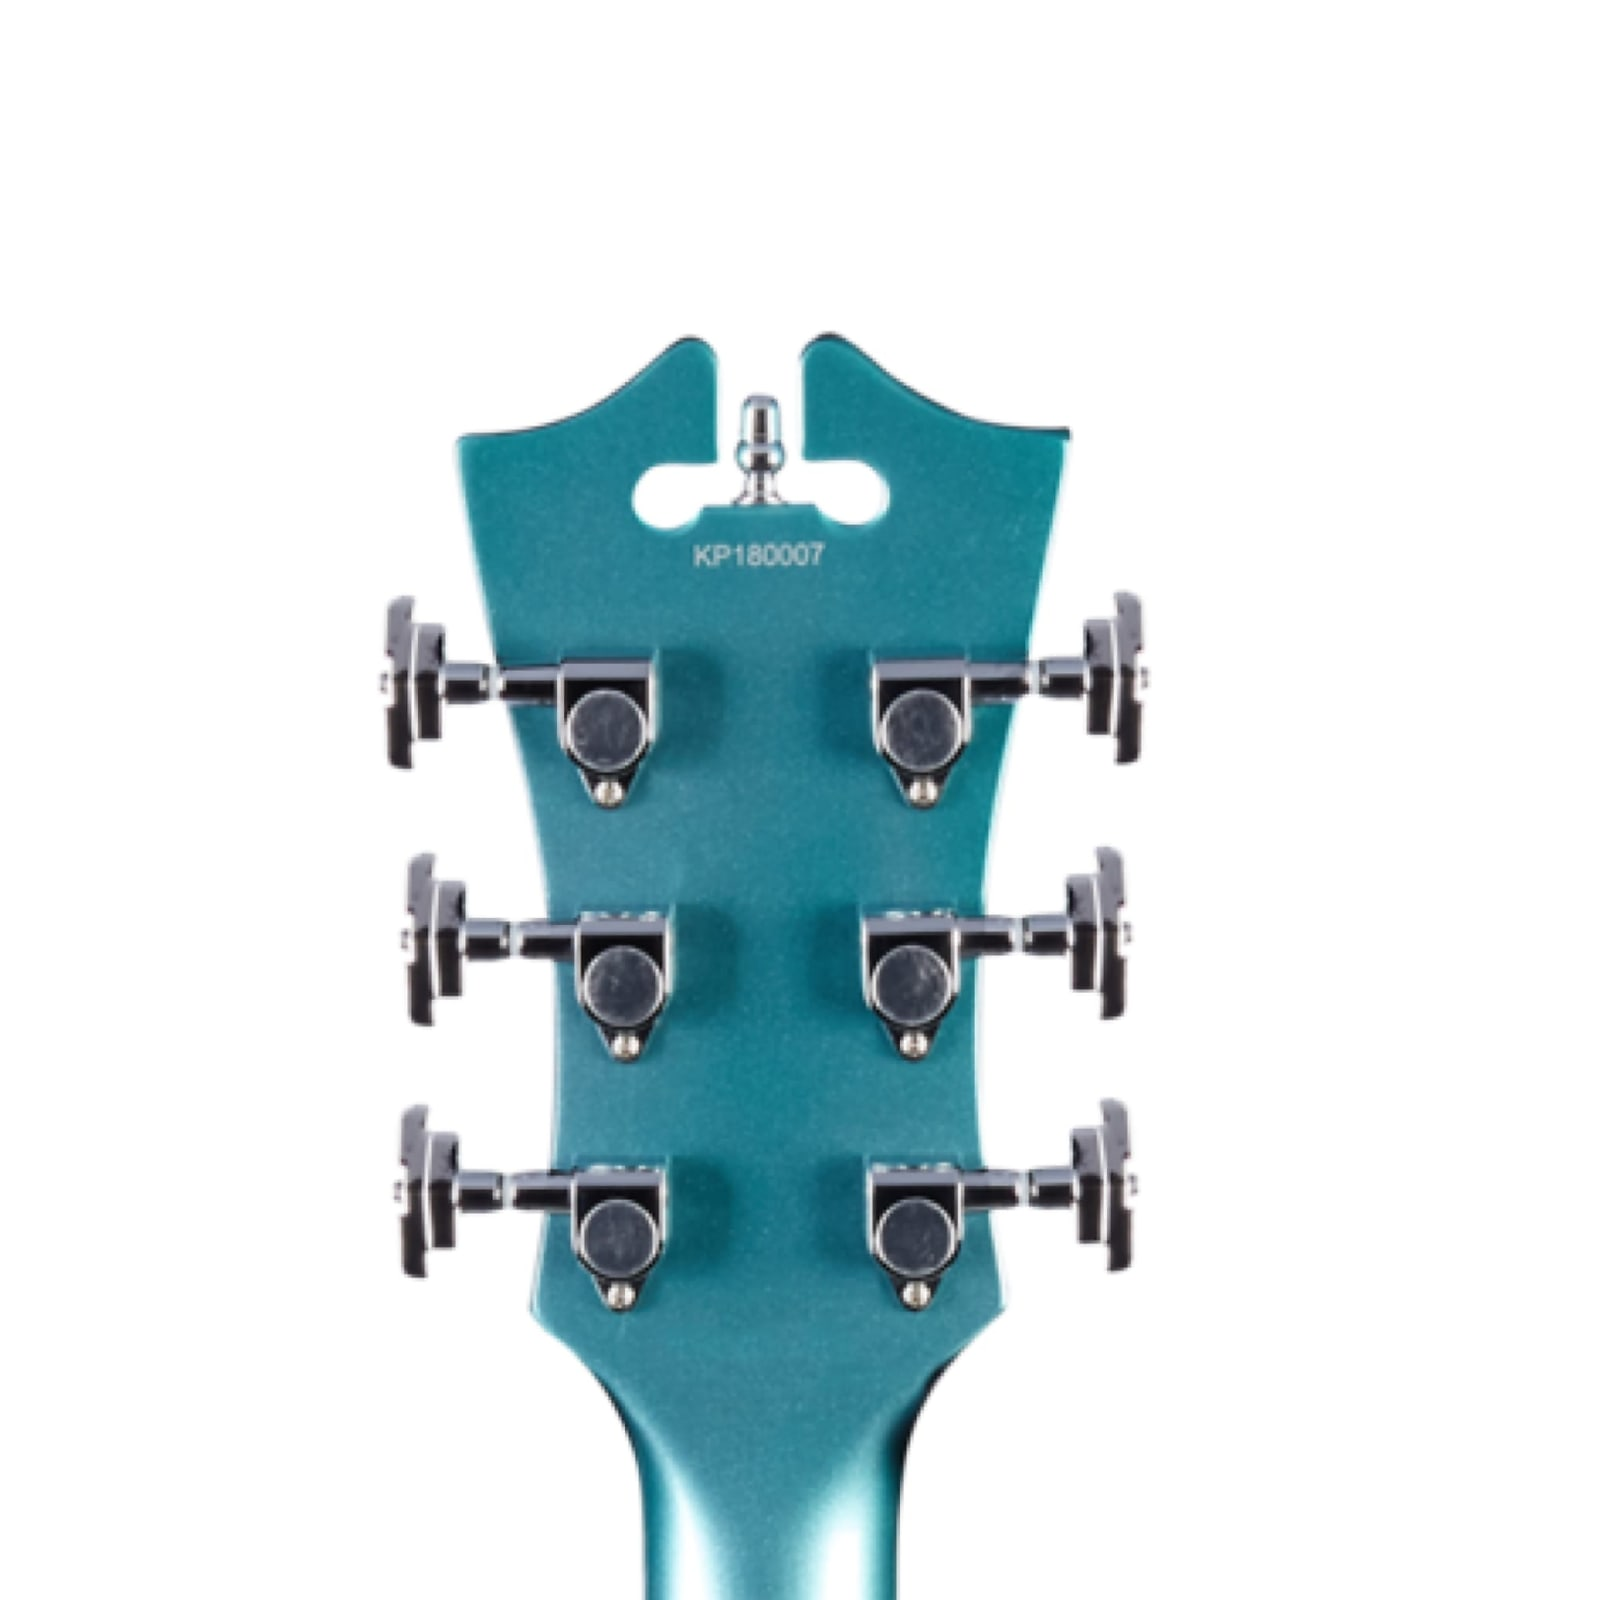 D'Angelico Premier Mini DC Double-Cutaway Semi-Hollow Body in Ocean Turquoise w/ Gig Bag